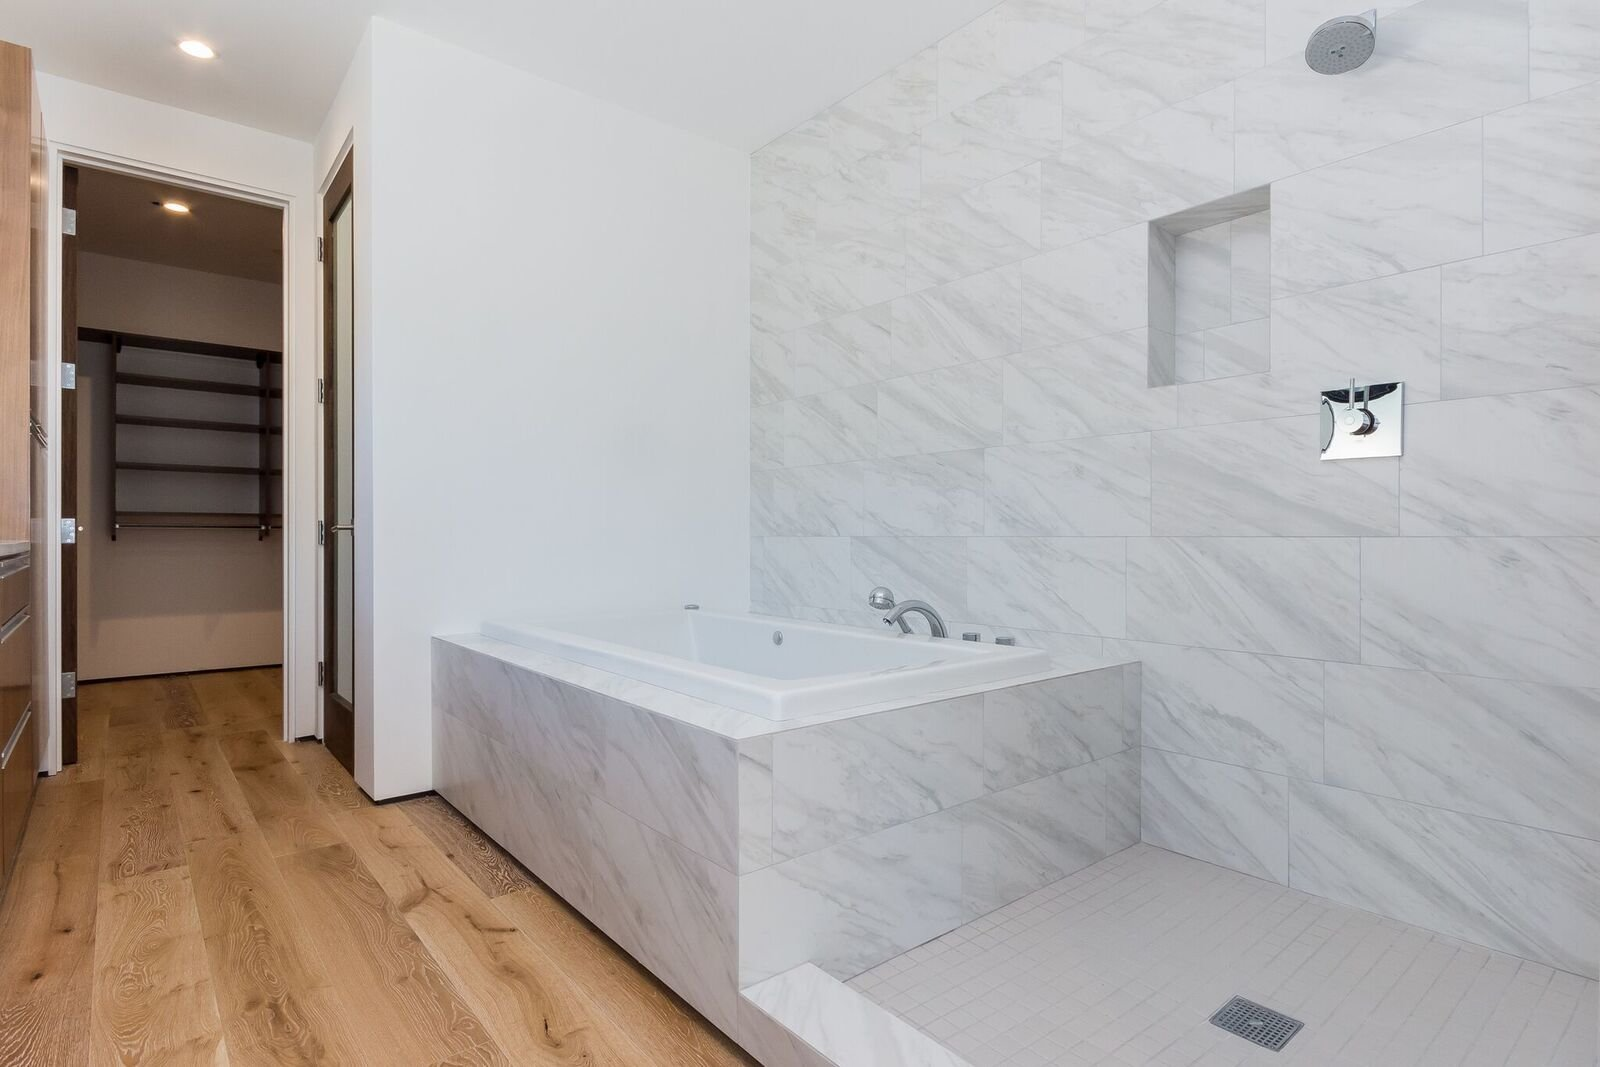 Master Bath with dual shower heads including rain head / jet tub Tagged: Bath, Medium Hardwood, Quartzite, Undermount, Drop In, Whirlpool, Full, Enclosed, Ceiling, Porcelain Tile, and One Piece.  Best Bath Enclosed Quartzite Photos from Mammoth Modern House 1